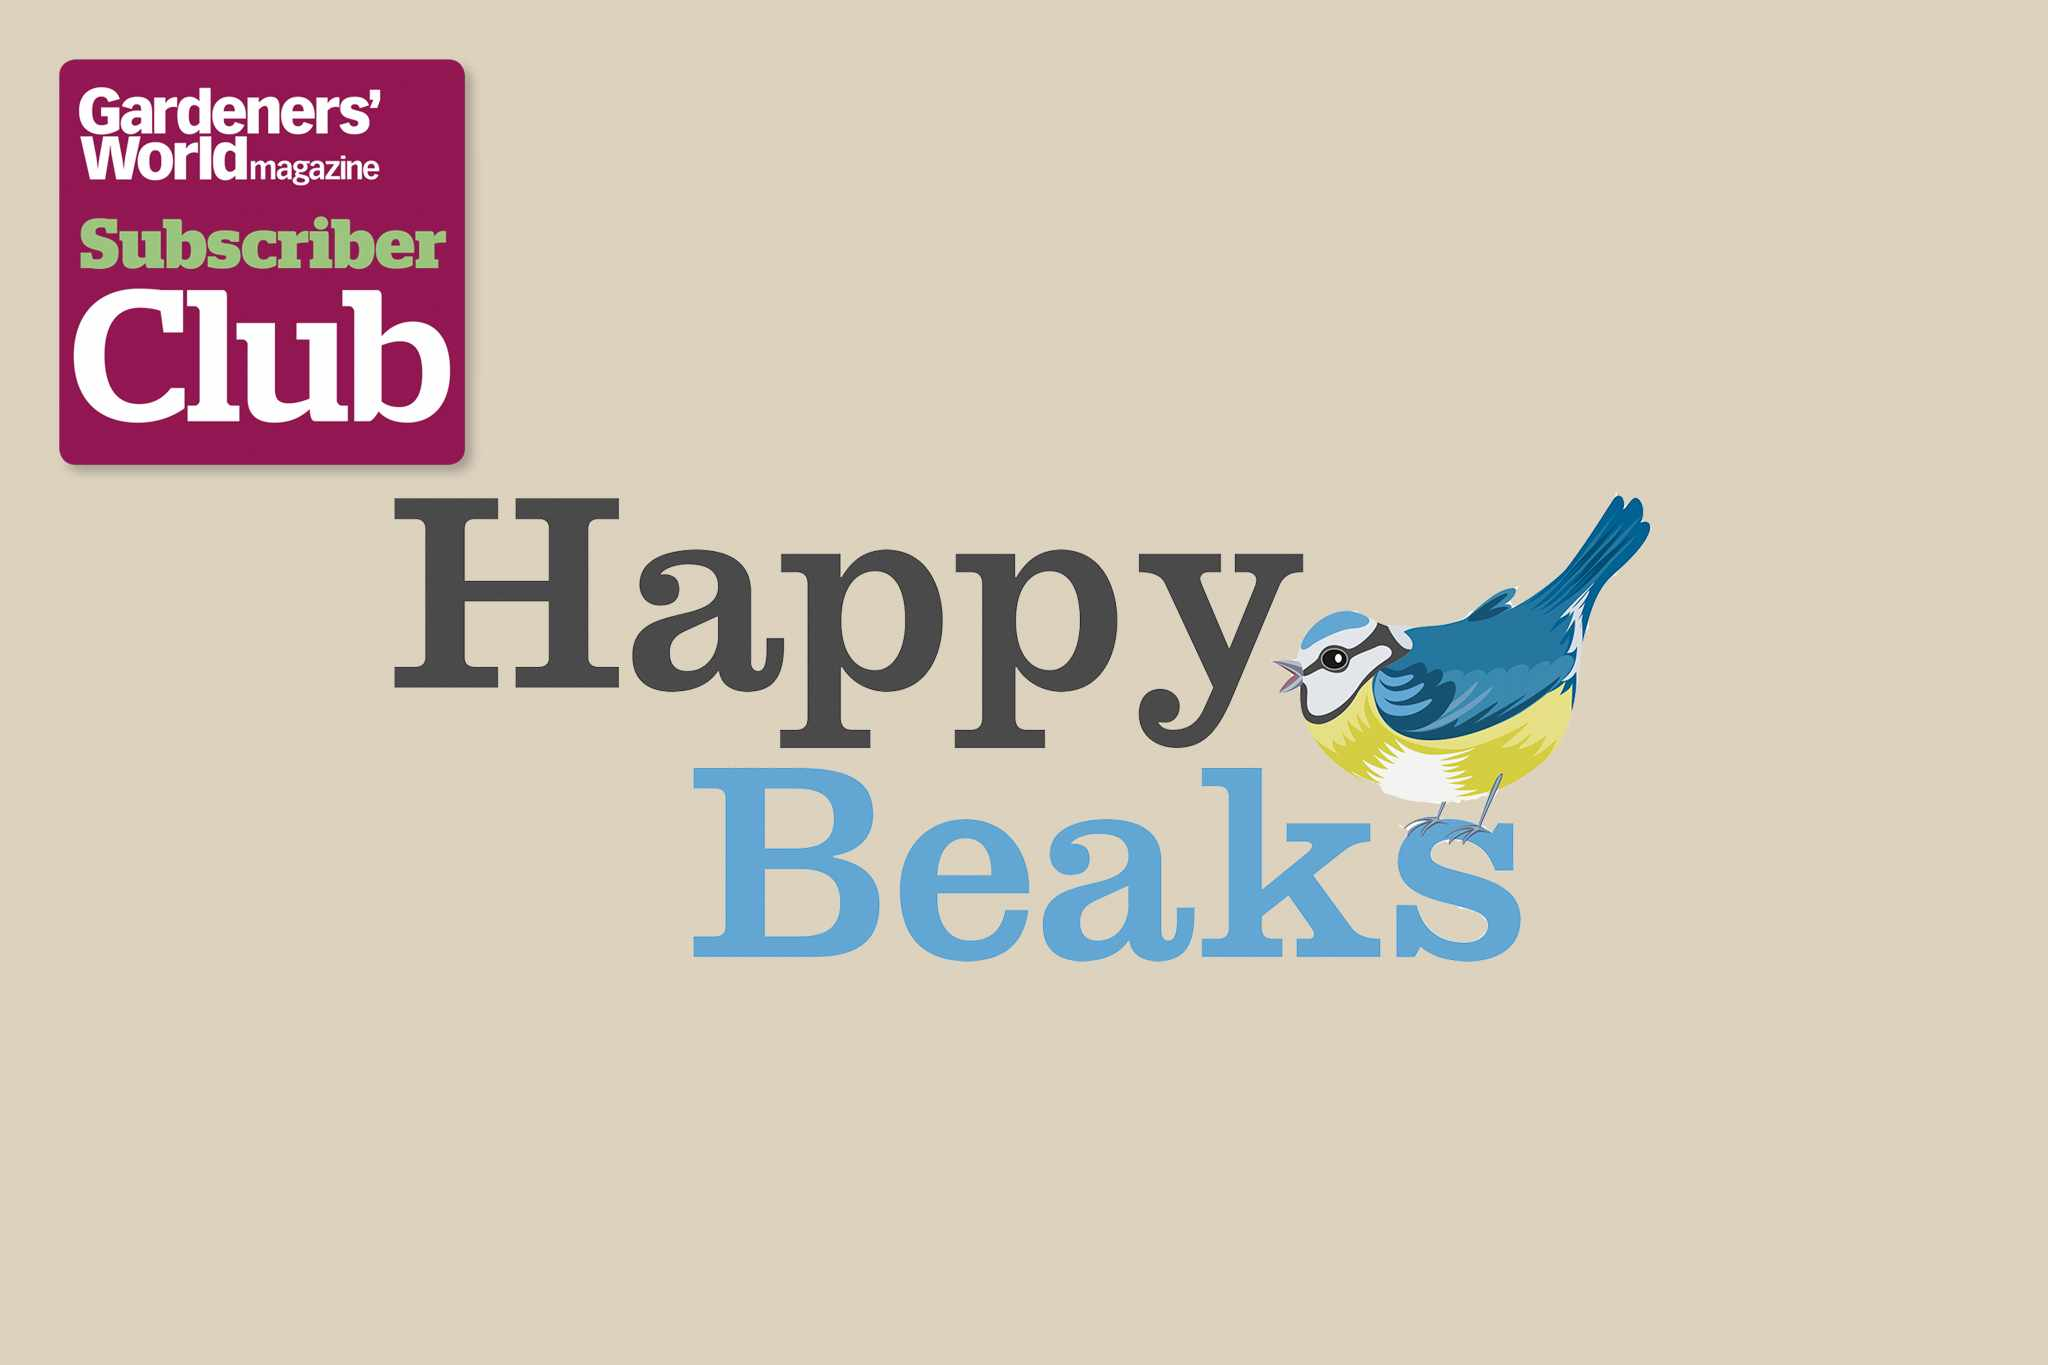 2048x1365-subscriber-club-10-per-cent-happy-beaks